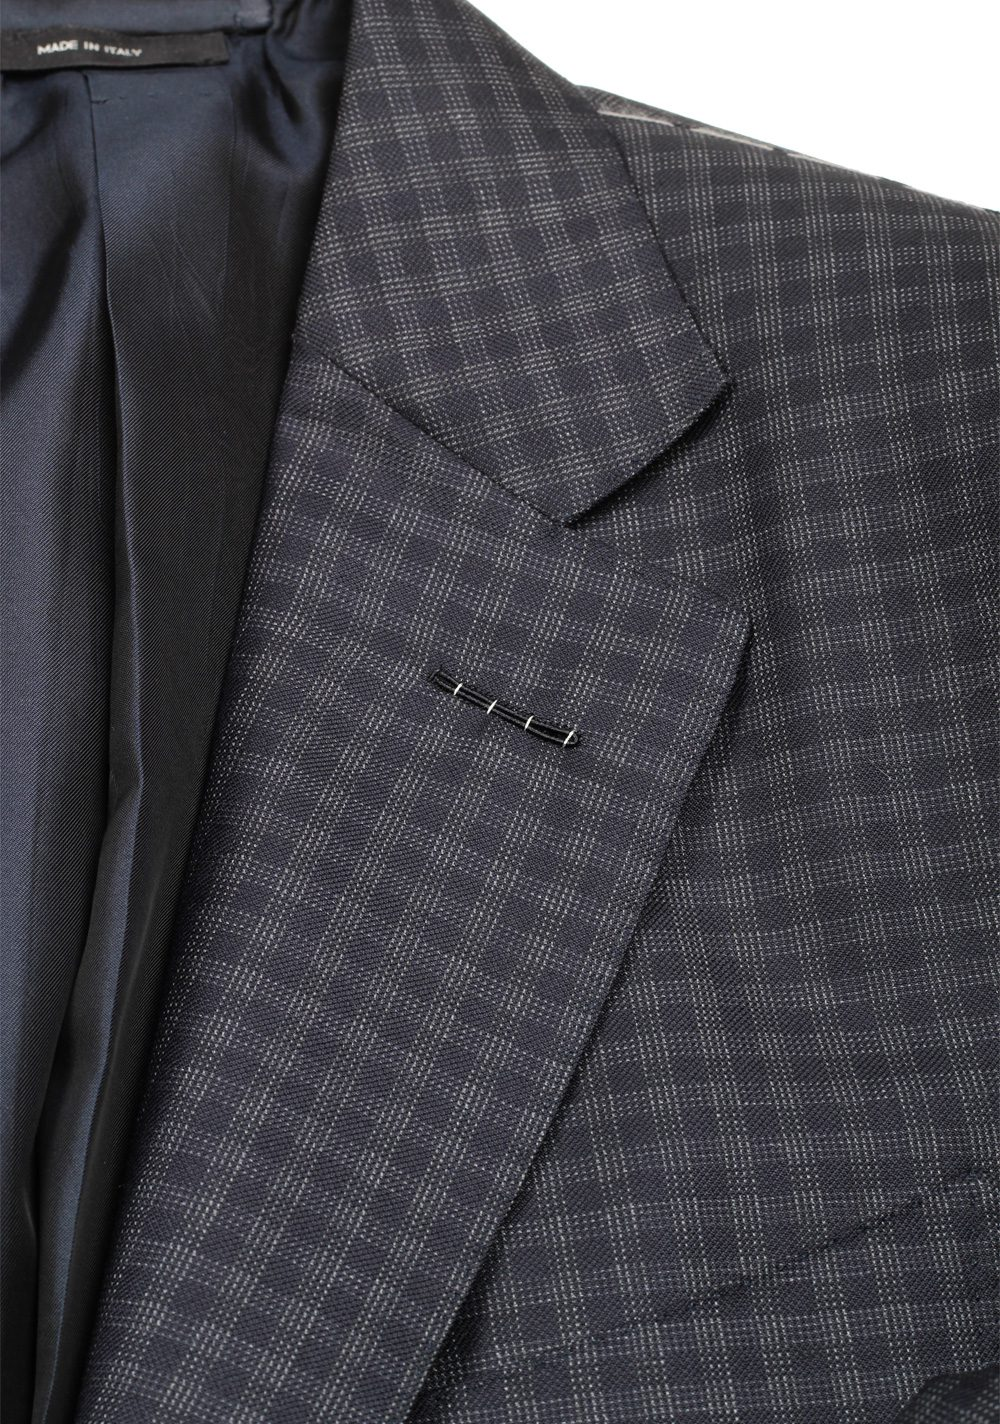 TOM FORD O'Connor Checked Blue Sport Coat Size 46 / 36R Fit Y | Costume Limité